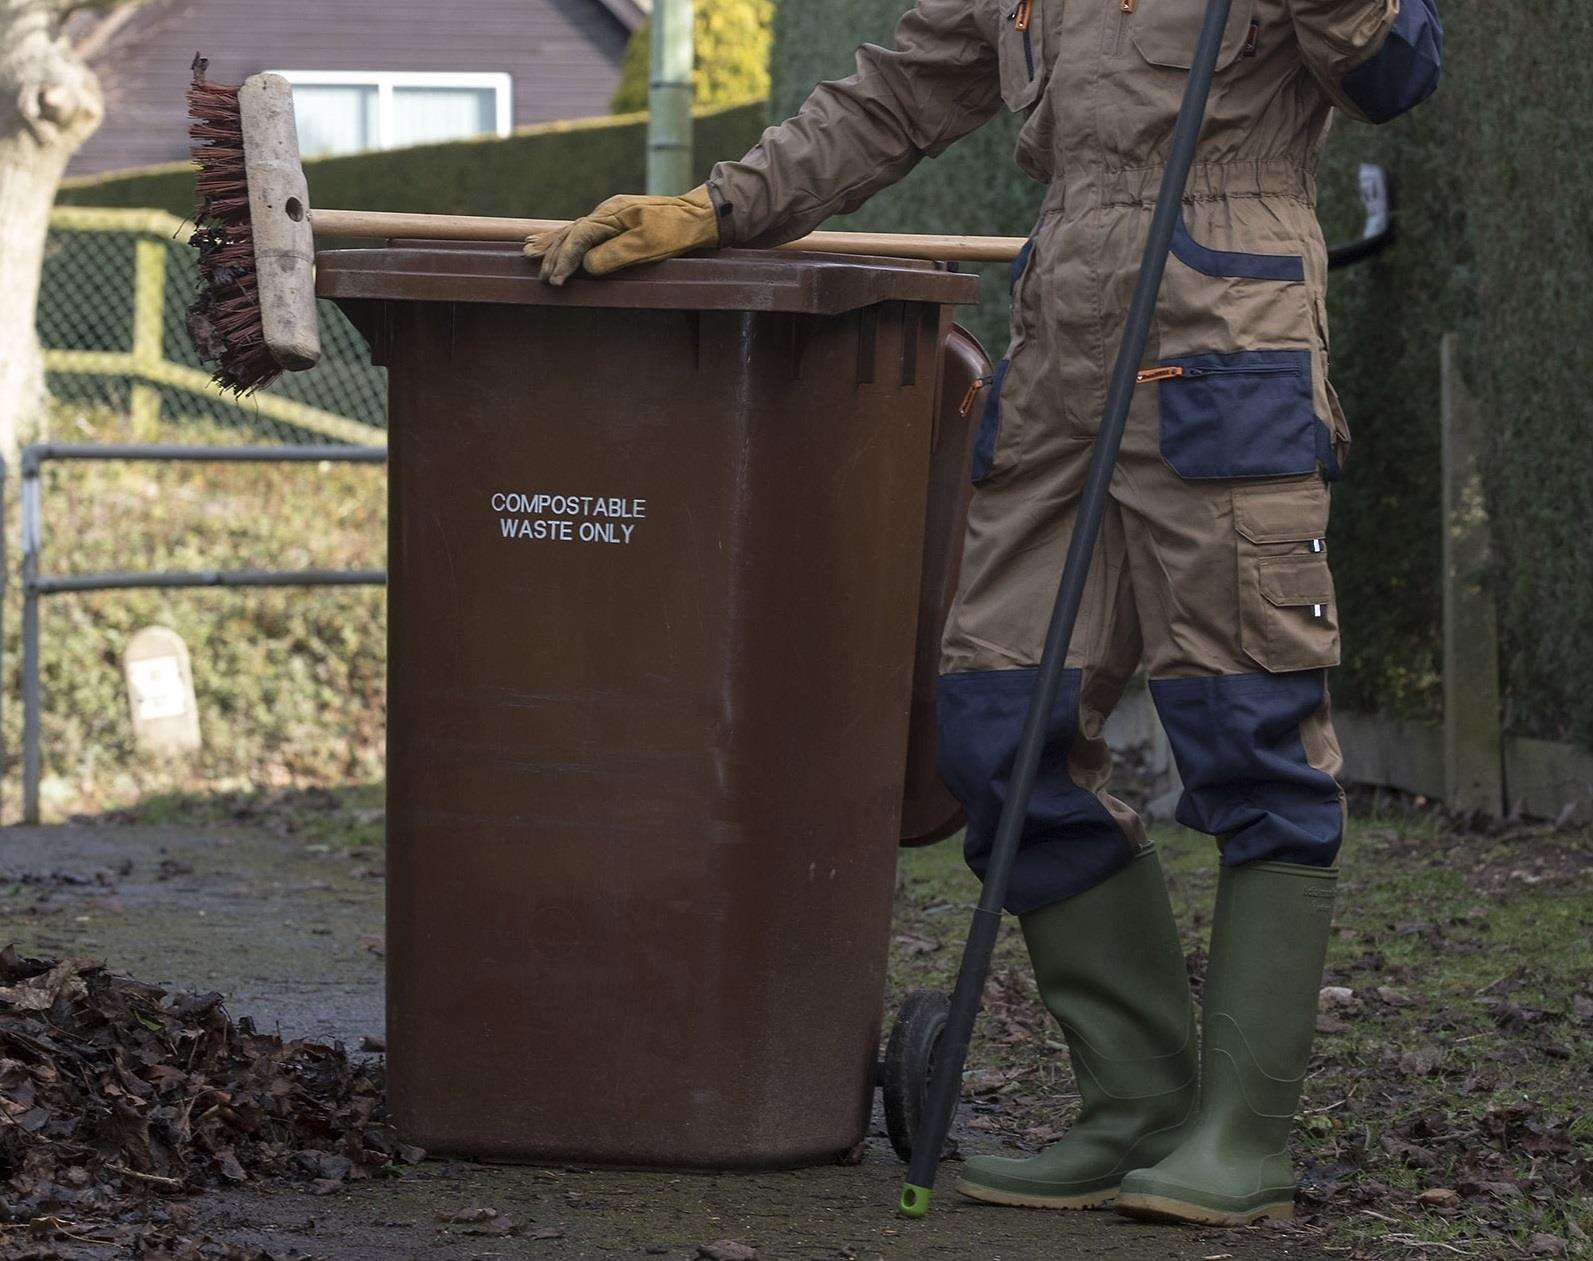 The brown bin service is set to be reviewed (2294408)